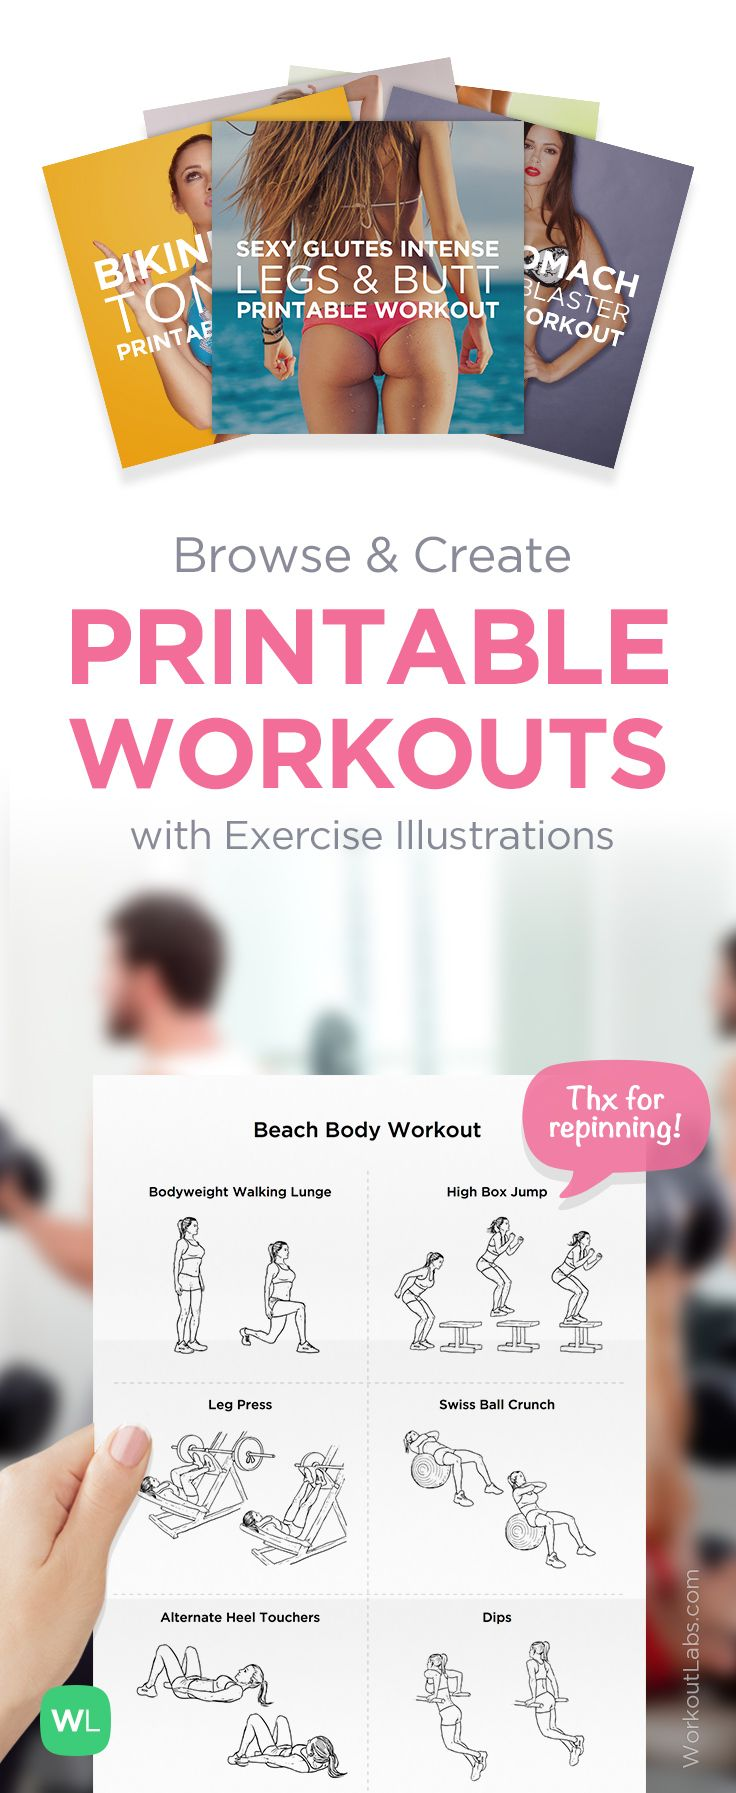 Visit http://WorkoutLabs.com/workout-plans to download printable PDF workouts with exercise illustrations, FREE